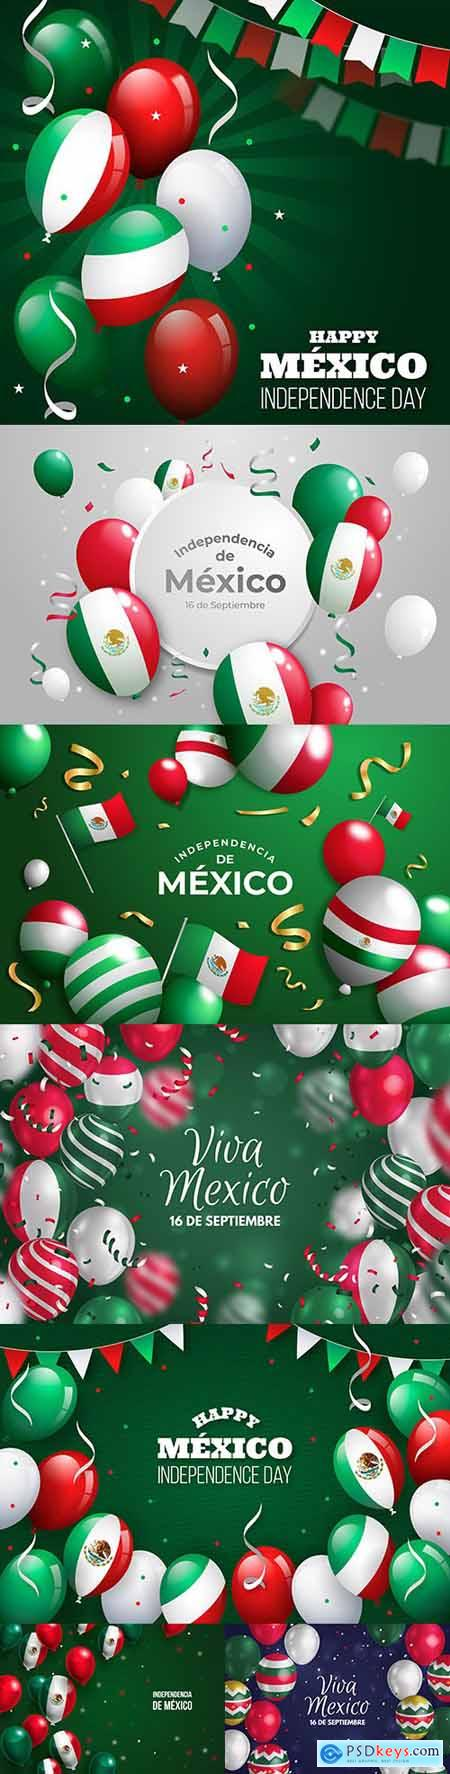 Mexican Independence Day realistic background with balloons